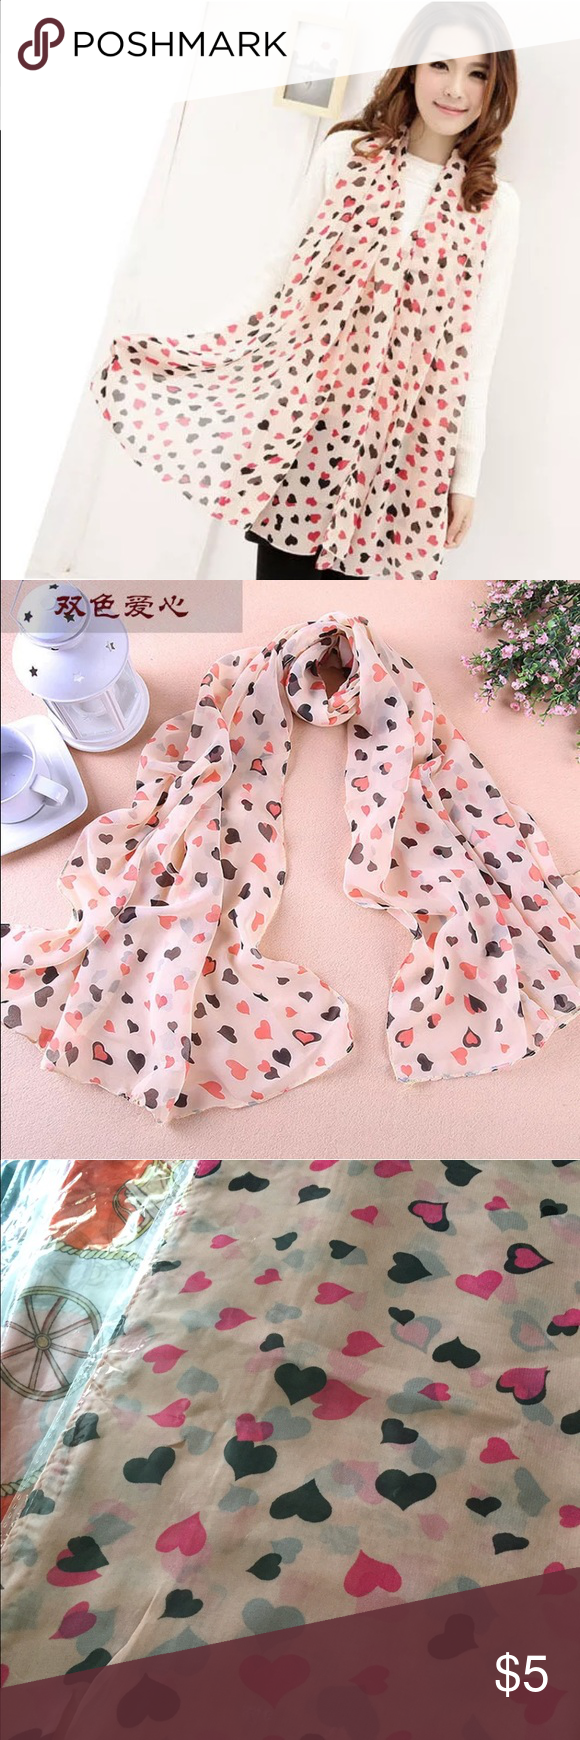 Pale Pink Hearts Scarf Pale pink hearts Scarf! 145cm x 40cm and made of polyester! Works really well as a hair or neck scarf! Price is firm on this item unless bulked! Item did not come with tag but has original wrapping! Accessories Scarves & Wraps